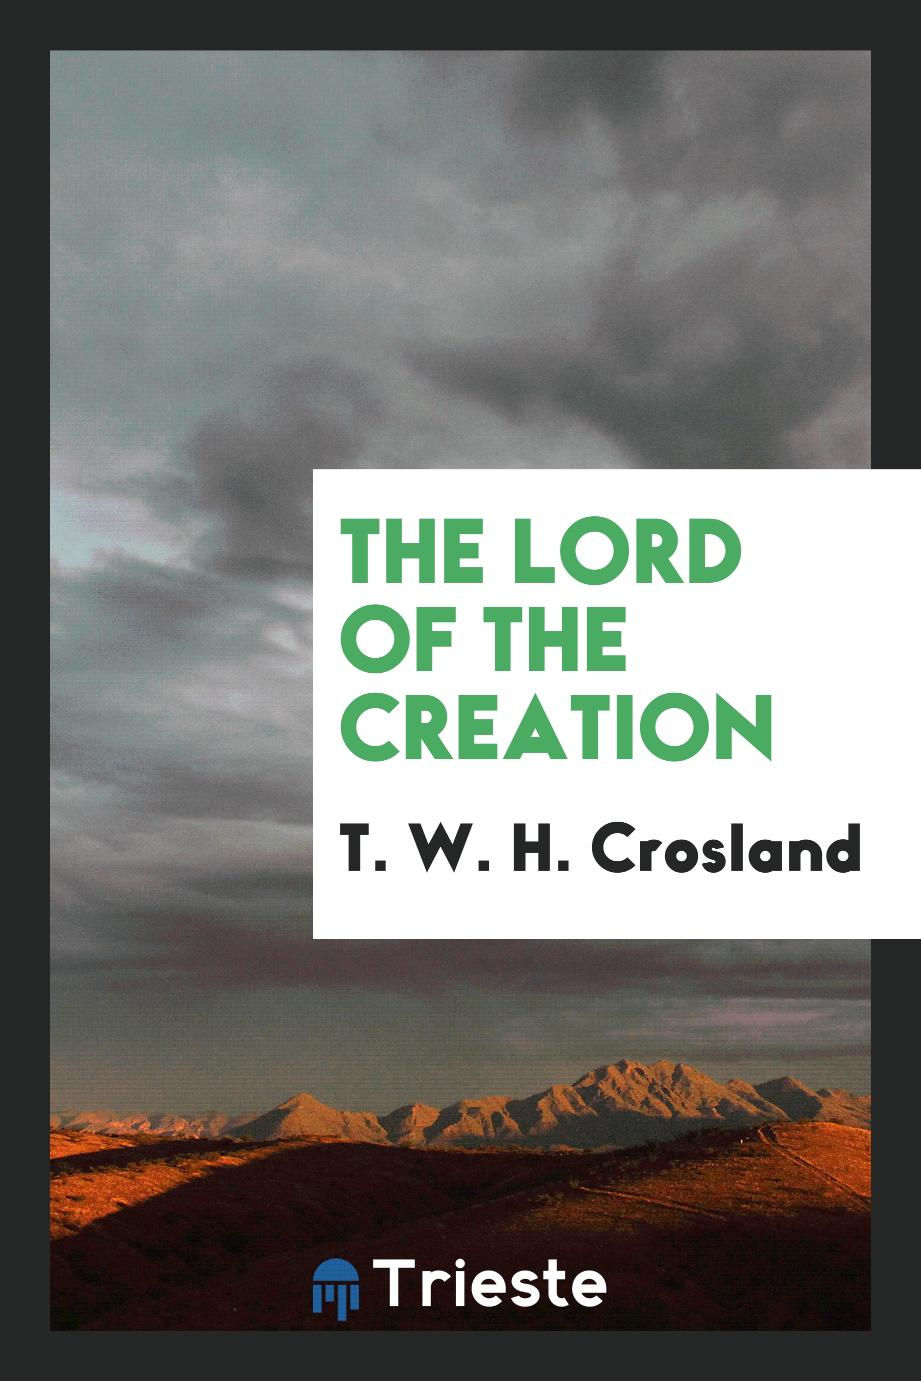 T. W. H. Crosland - The Lord of the Creation